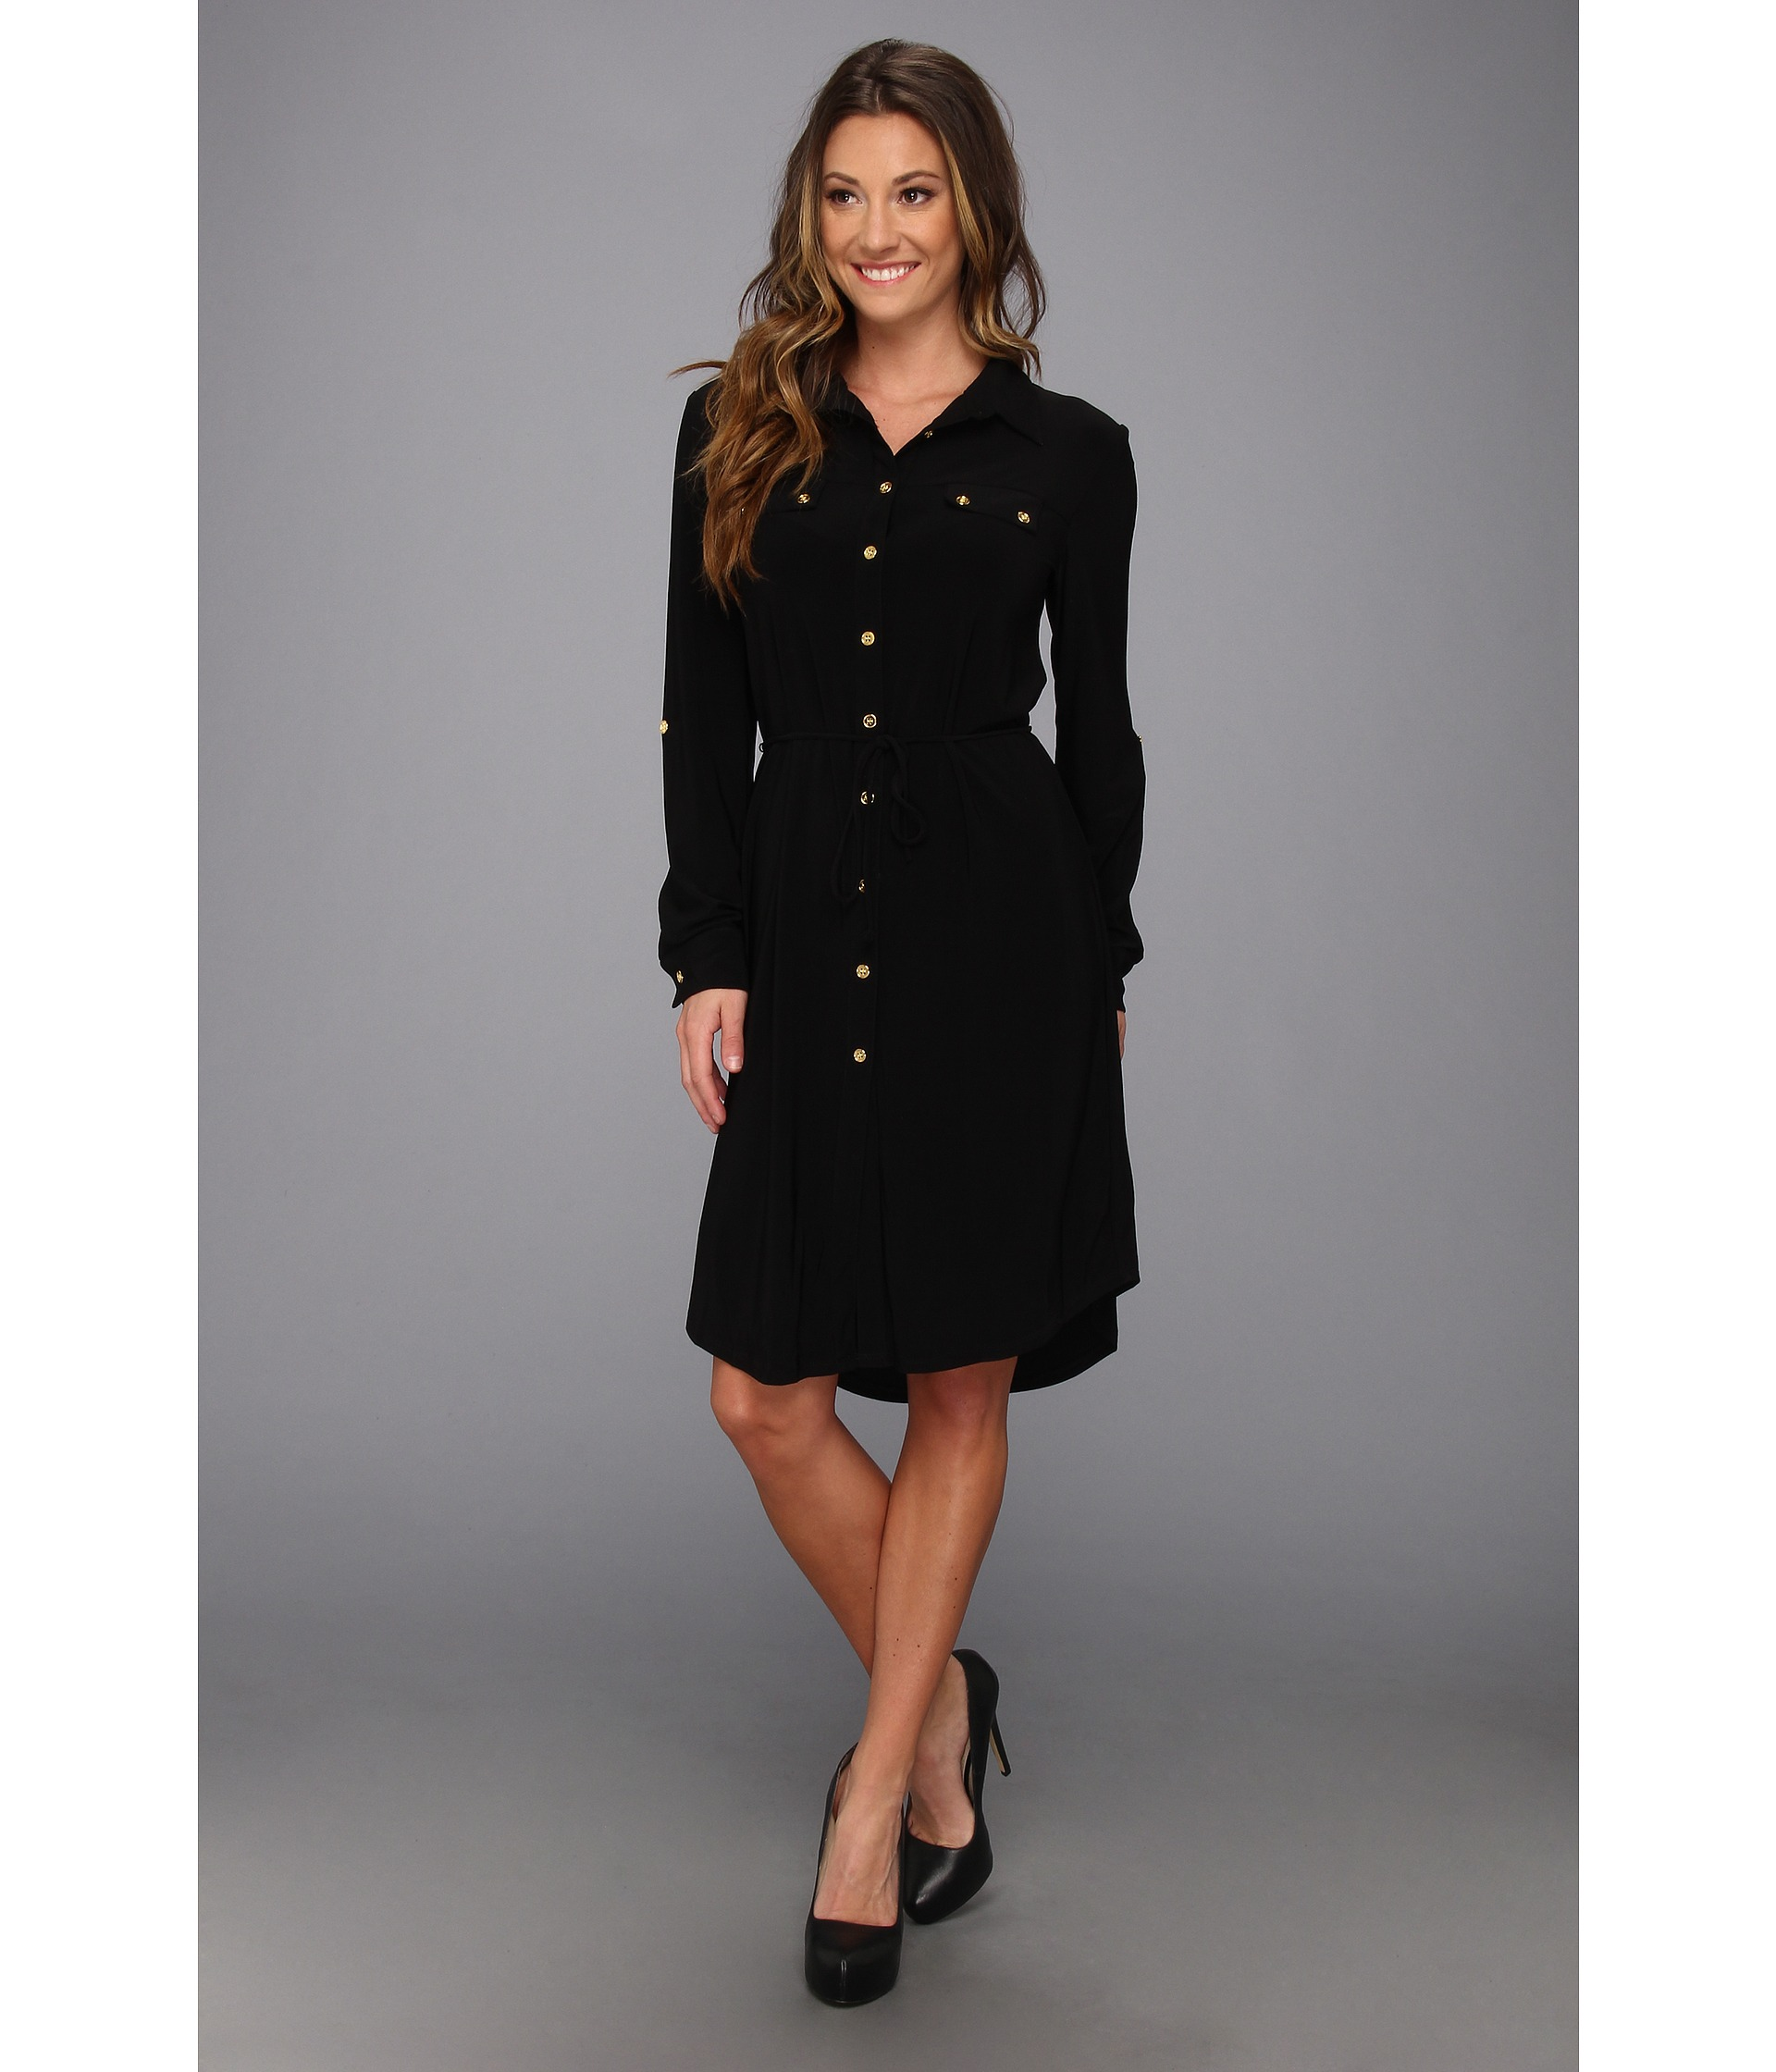 Black shirt dress - Black Bergen Dress